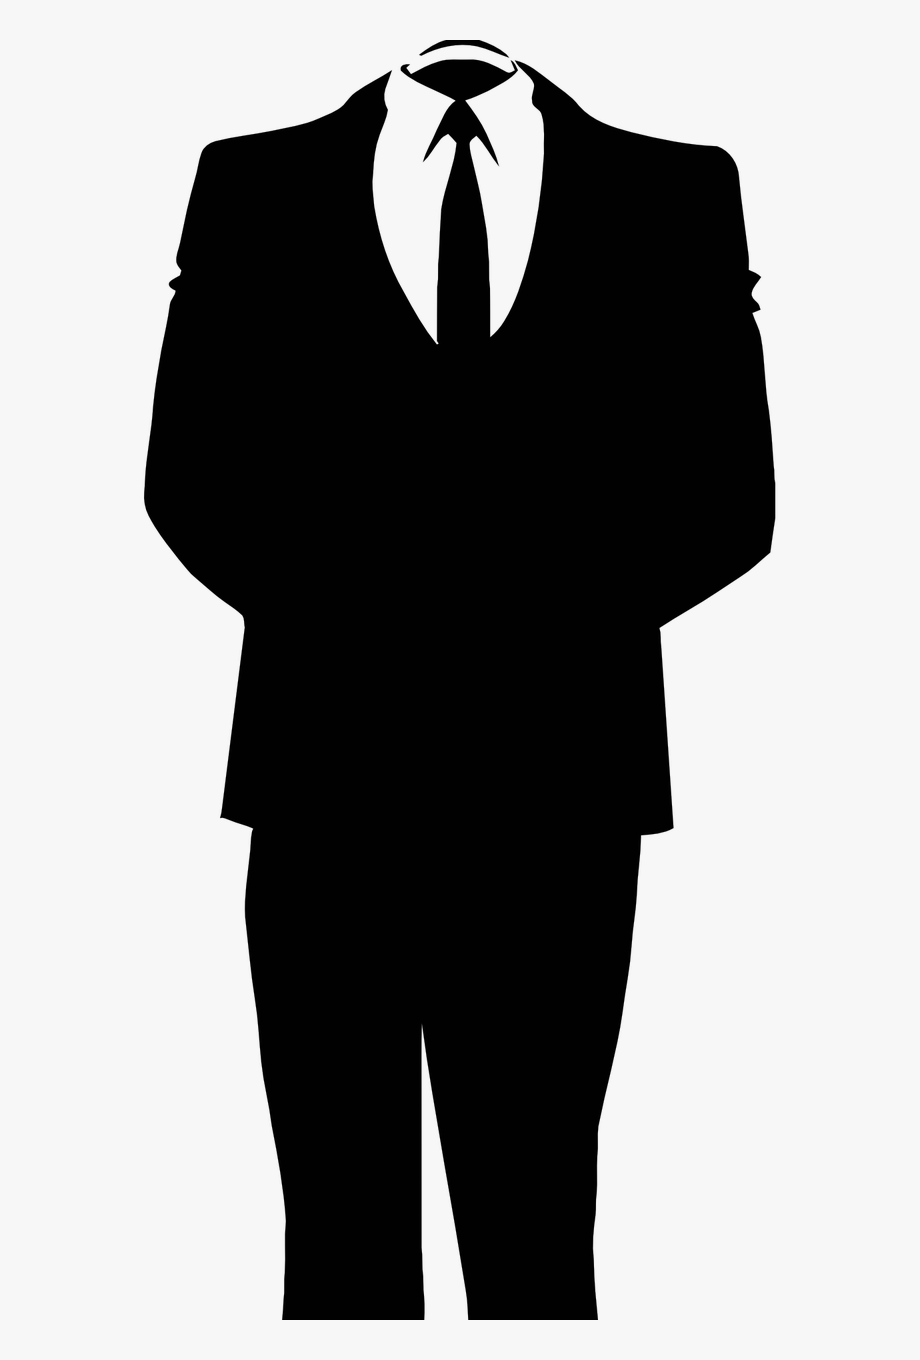 Black and white young man in suit clipart banner freeuse stock Man Business Suit Black Png Image - Suit Cartoon Png #2033541 - Free ... banner freeuse stock